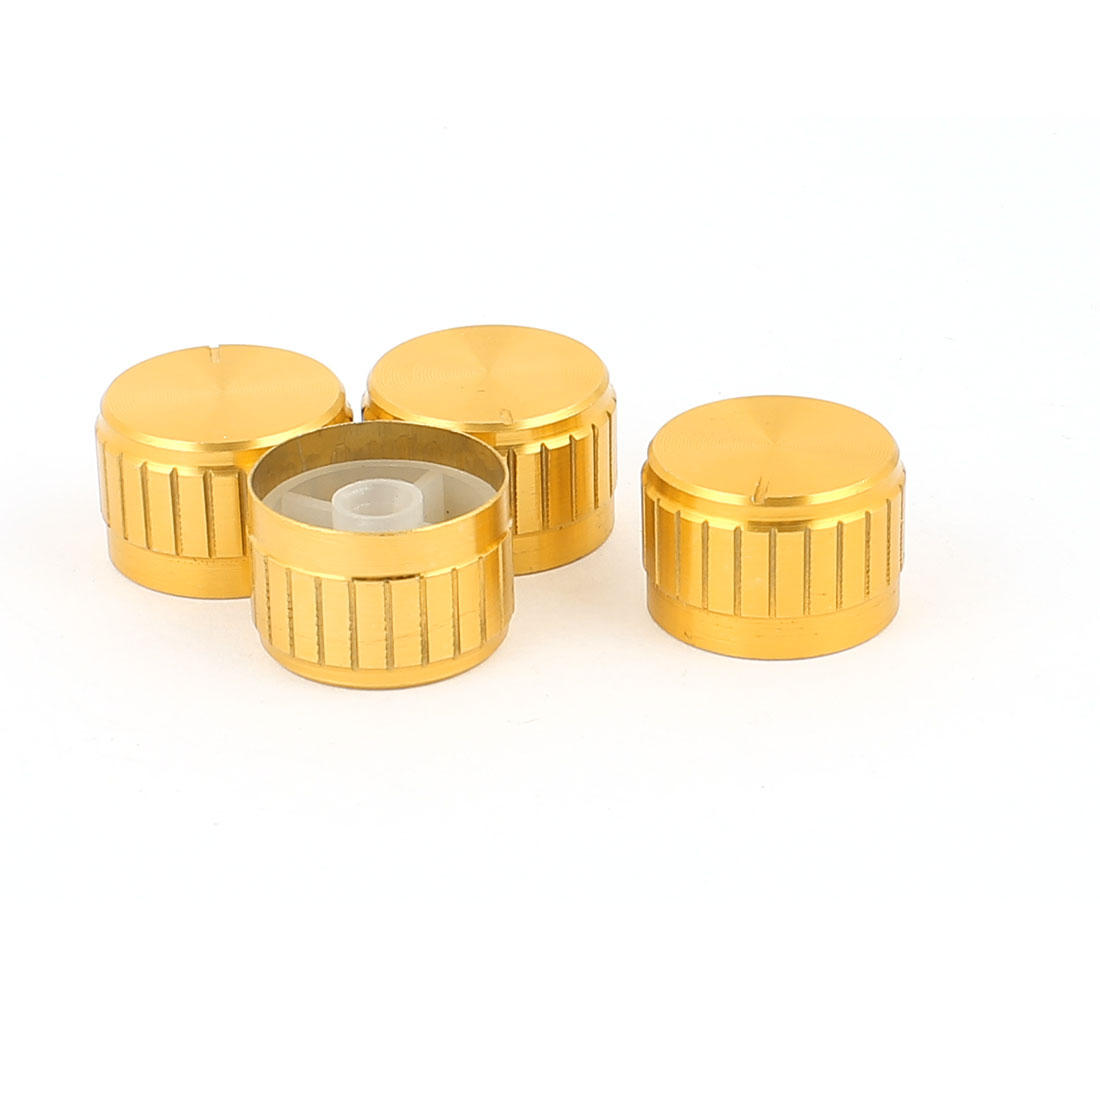 4 Pcs 26mm x 6mm Potentiometer Control Switch Volume Cap Aluminium Alloy Knurled Button Gold Tone